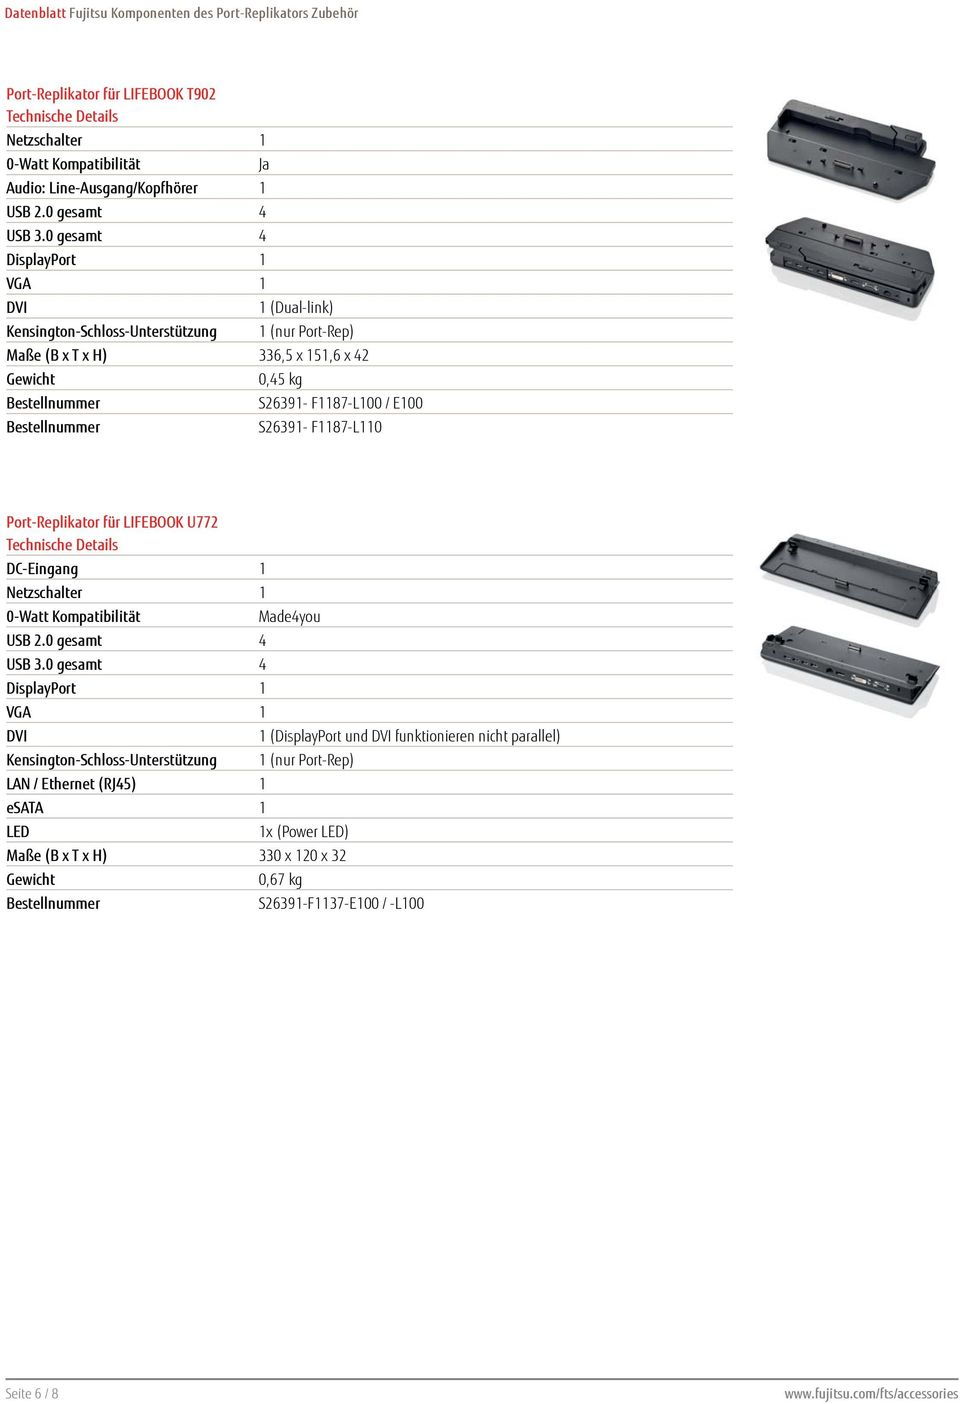 0,45 kg S26391- F1187-L100 / E100 S26391- F1187-L110 Port-Replikator für LIFEBOOK U772 Made4you USB 3.